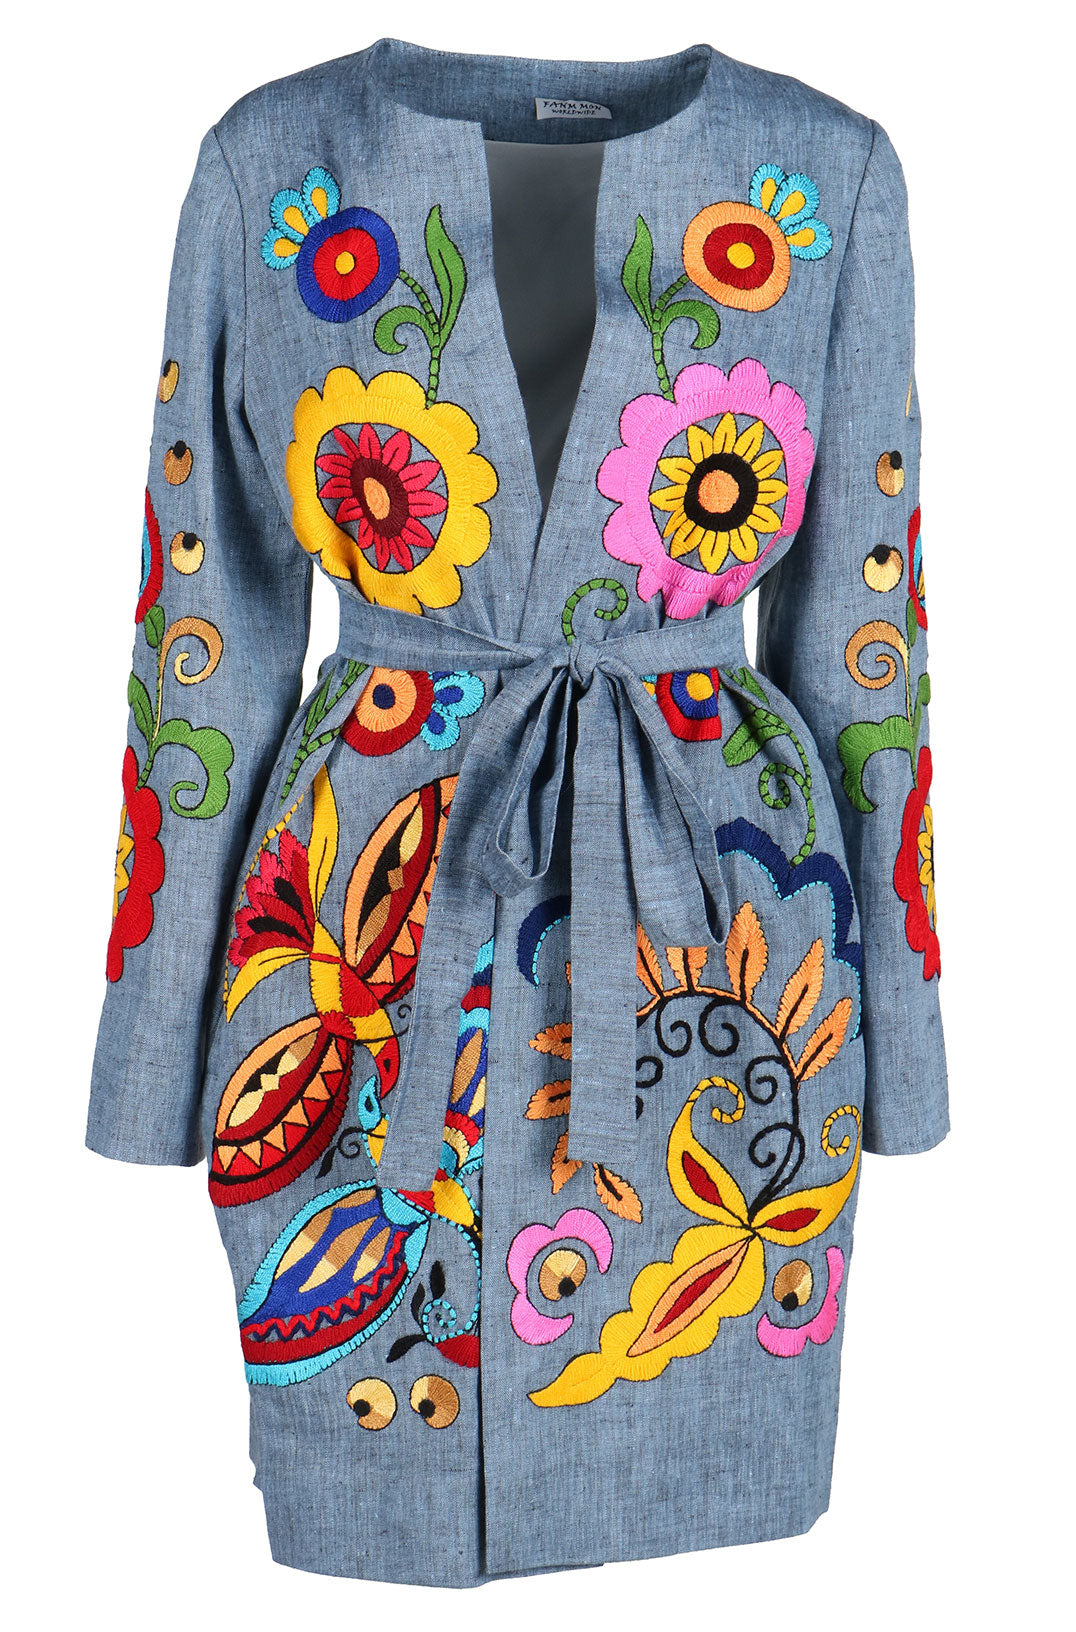 Fanm Mon Vyshyvanka PARSHA Linen Jacket HAND Embroidered MULTI COLOR Floral Jacket